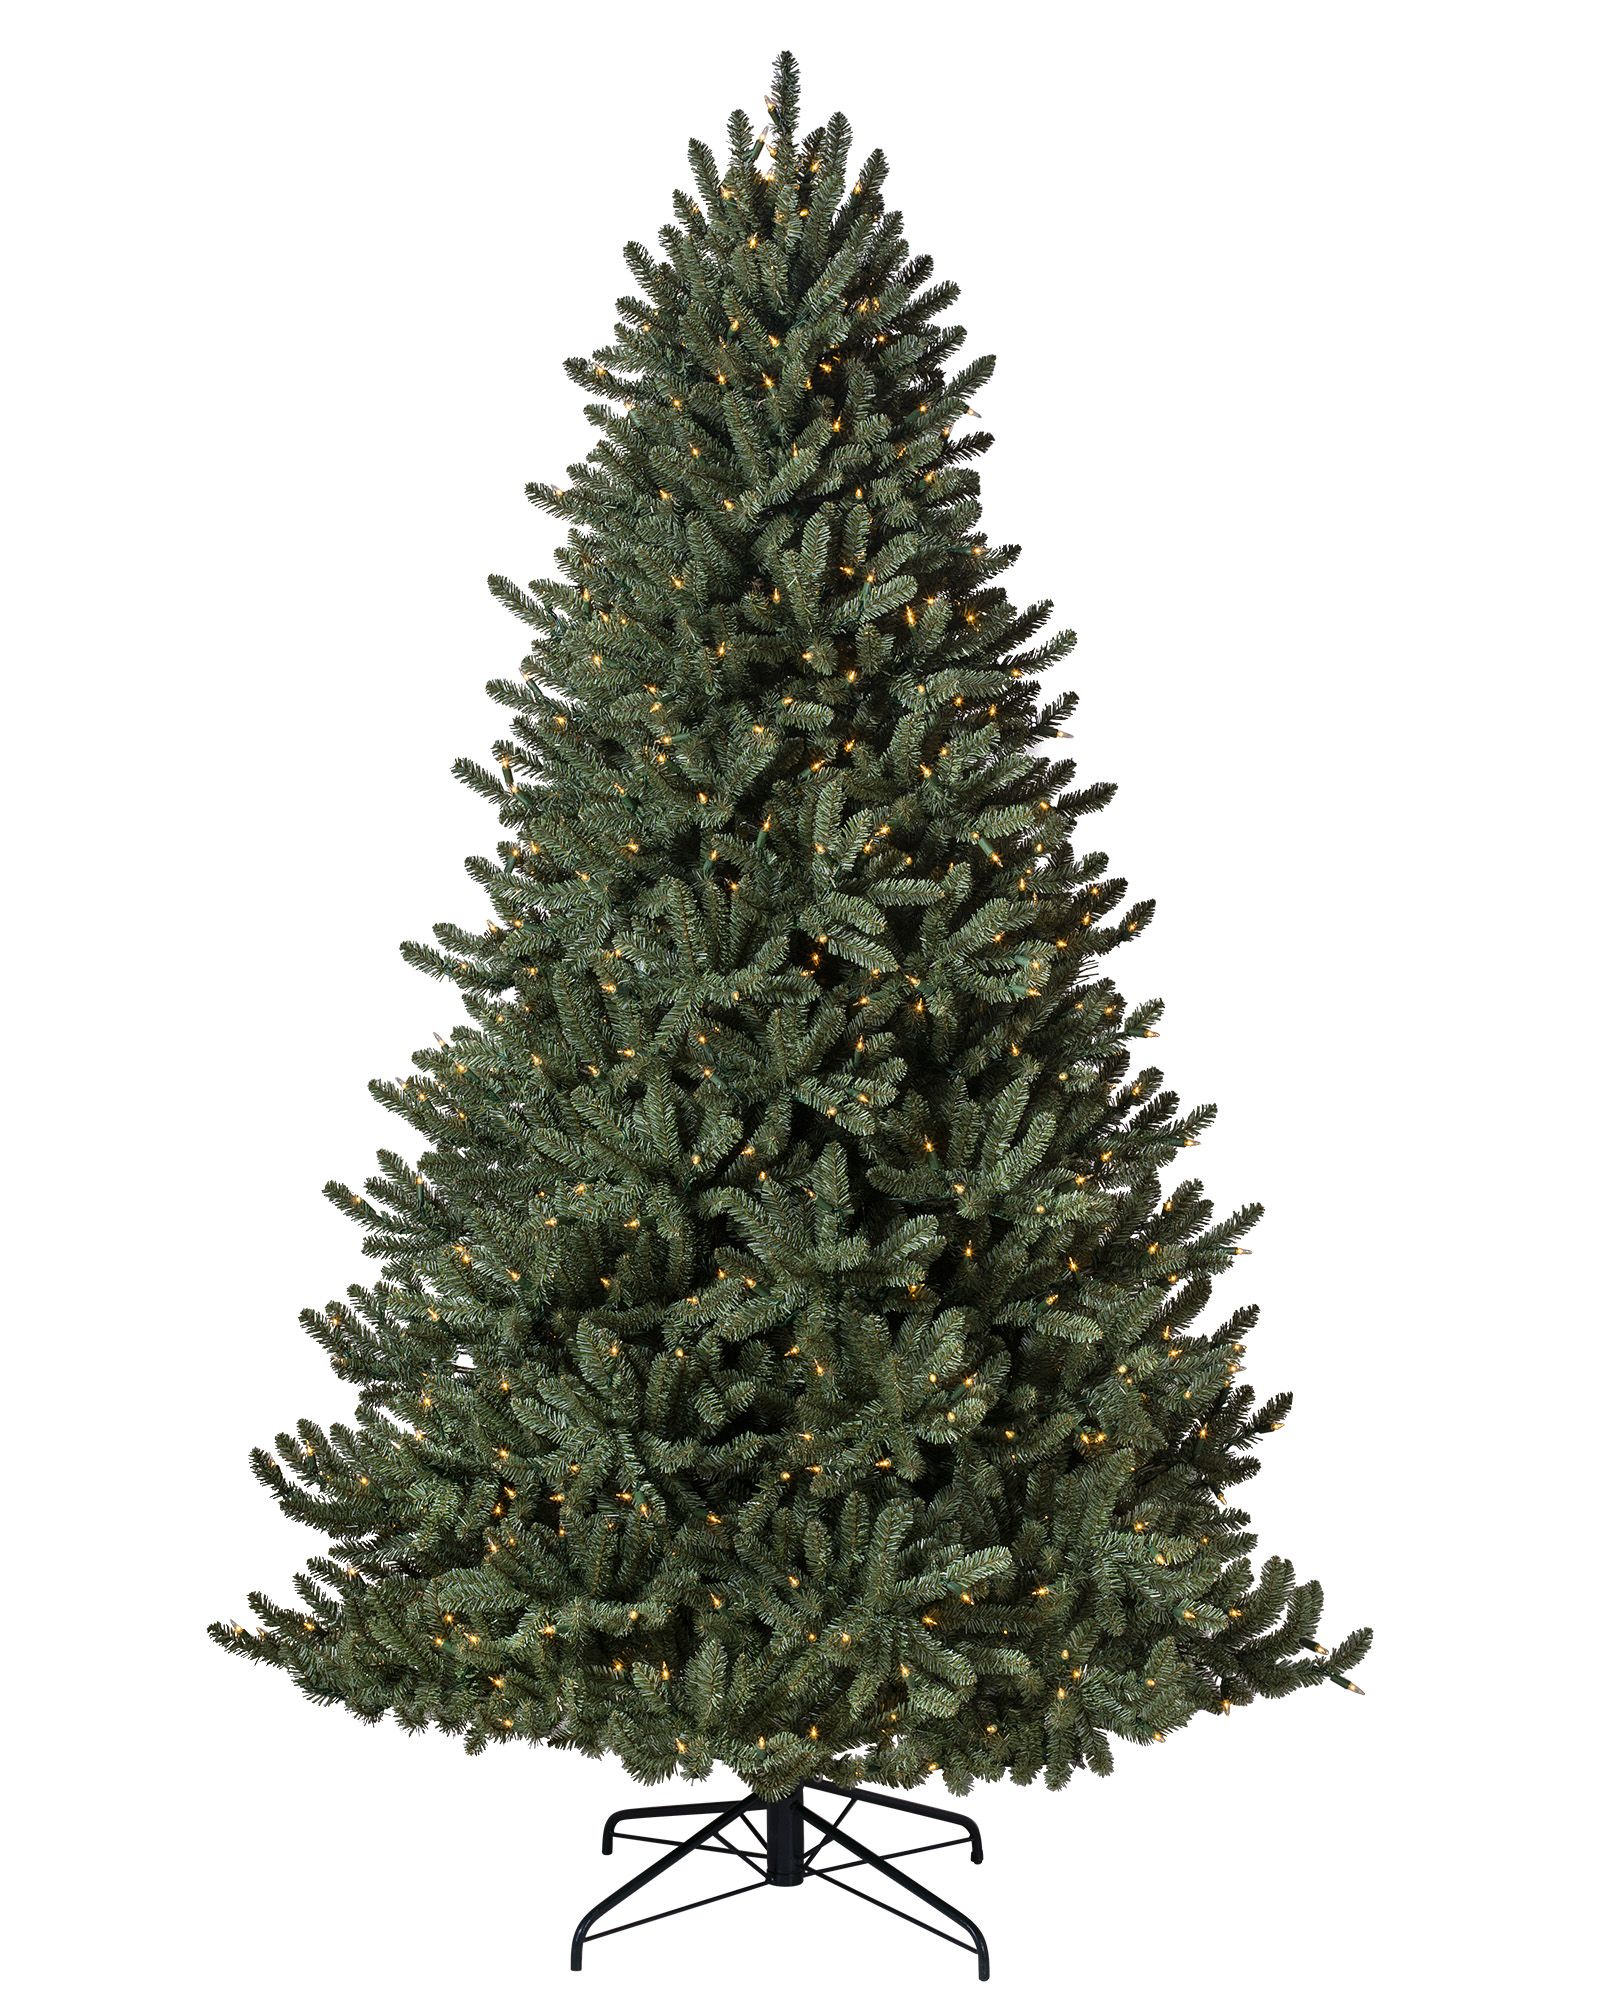 Top 10 Best High End Artificial Christmas Trees 2021 Absolute Christmas Artificial Christmas Tree Christmas Lights Christmas Tree